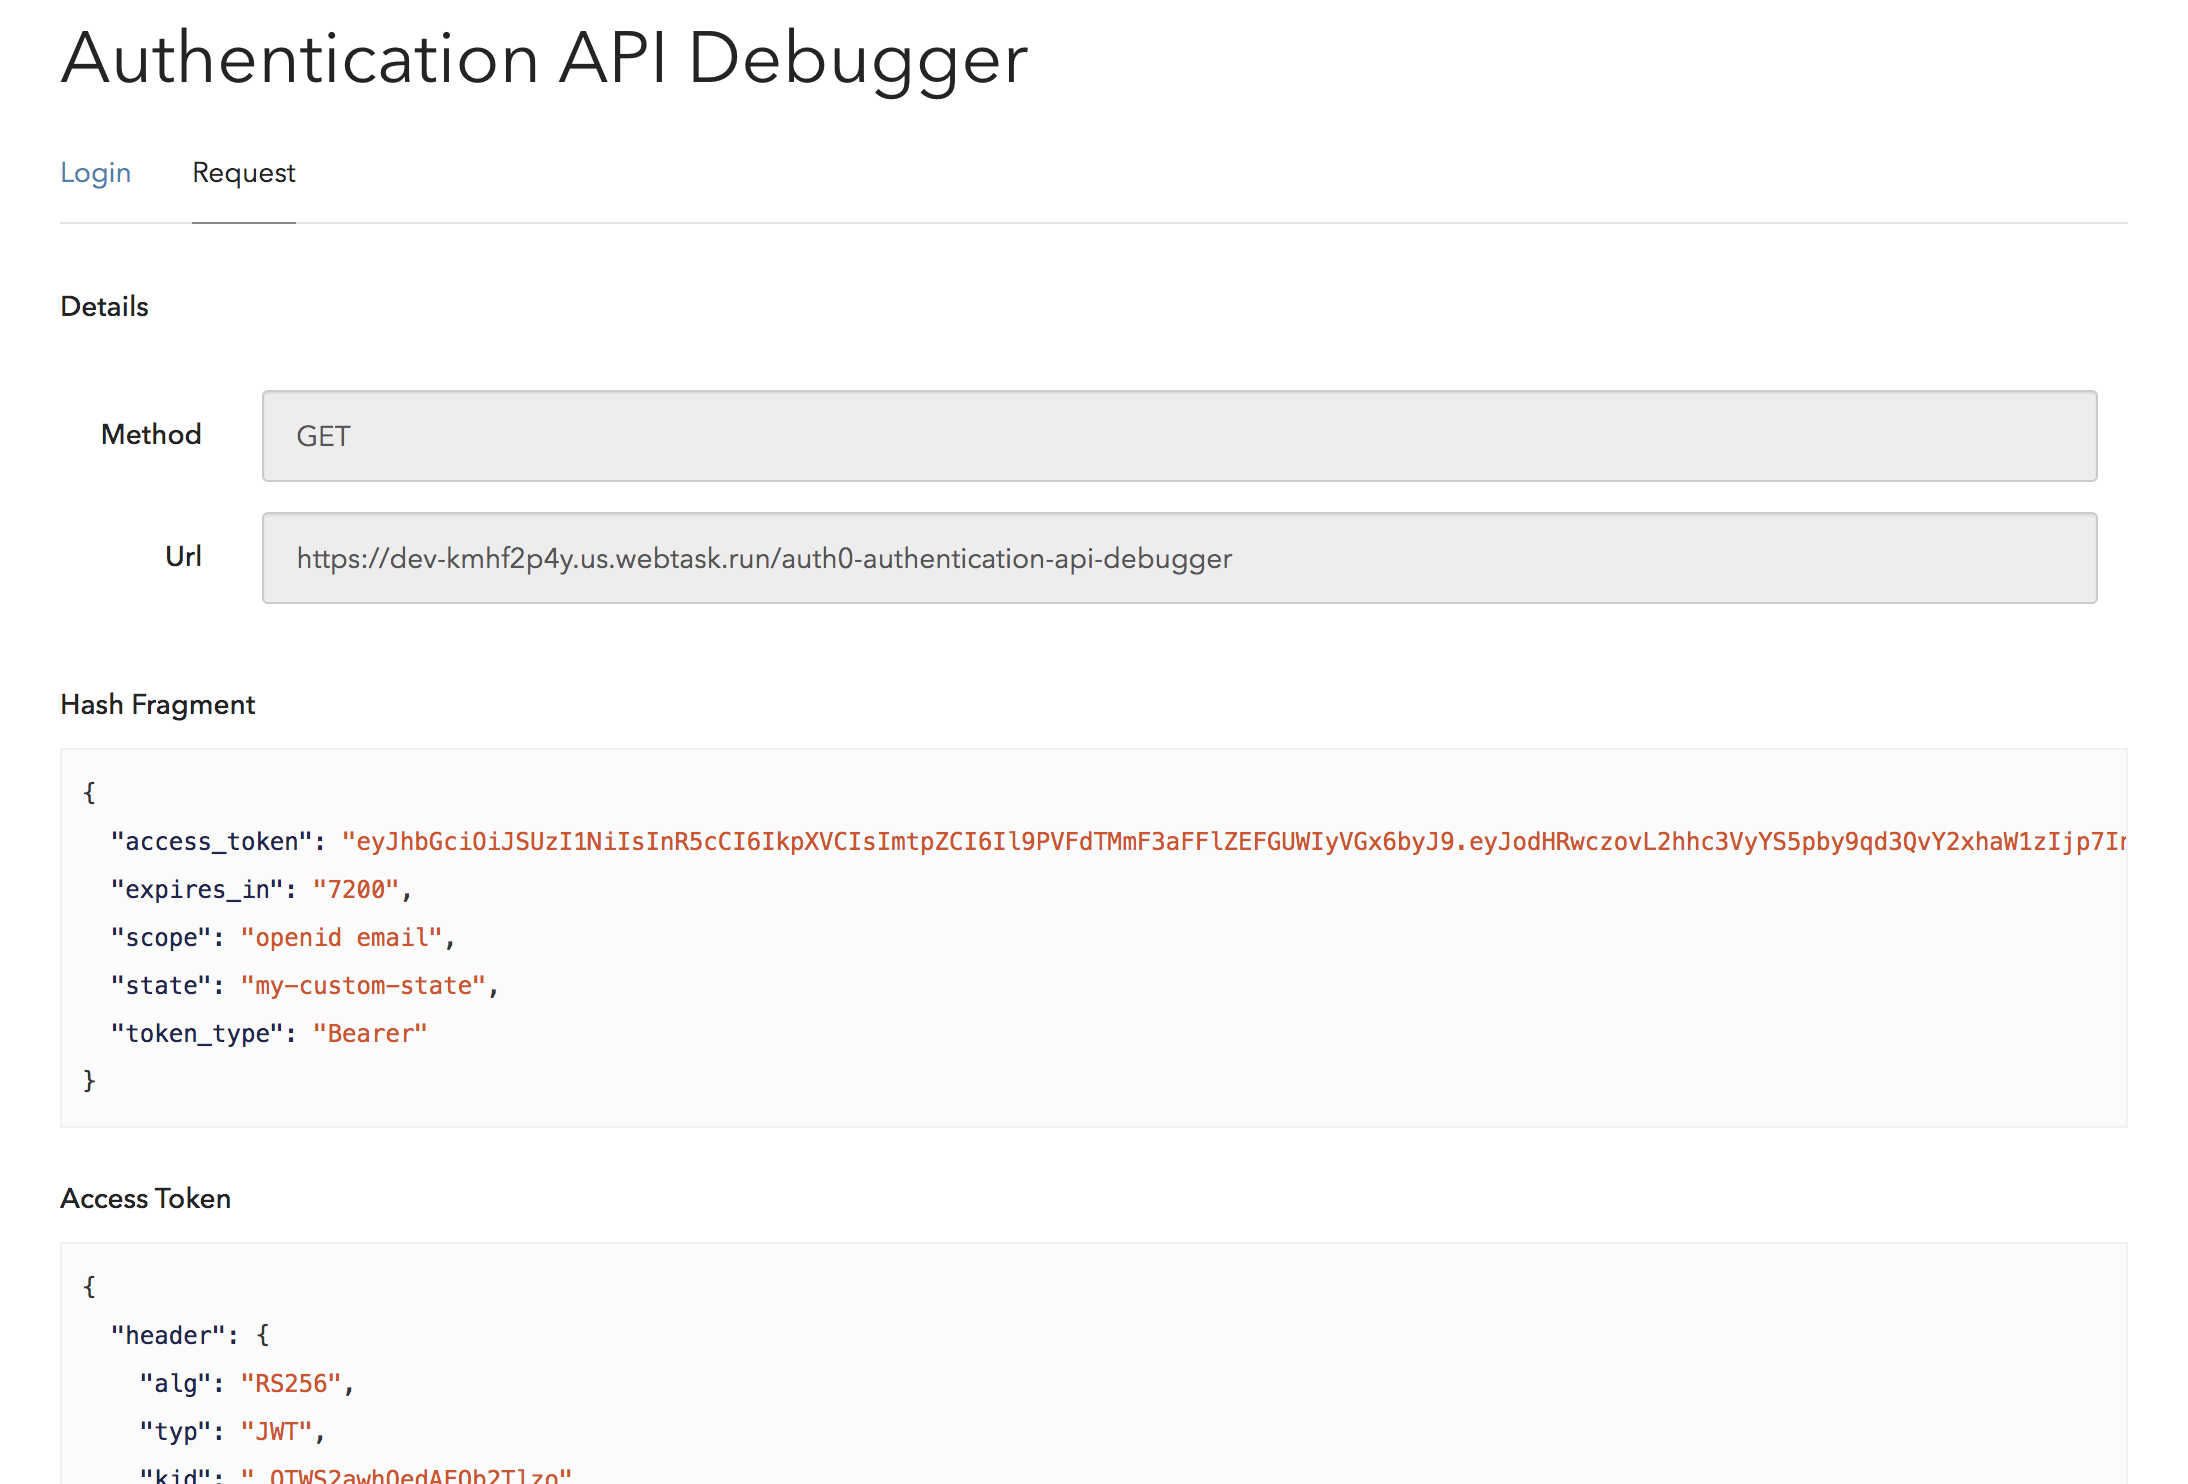 Authentication Debugger Access Token